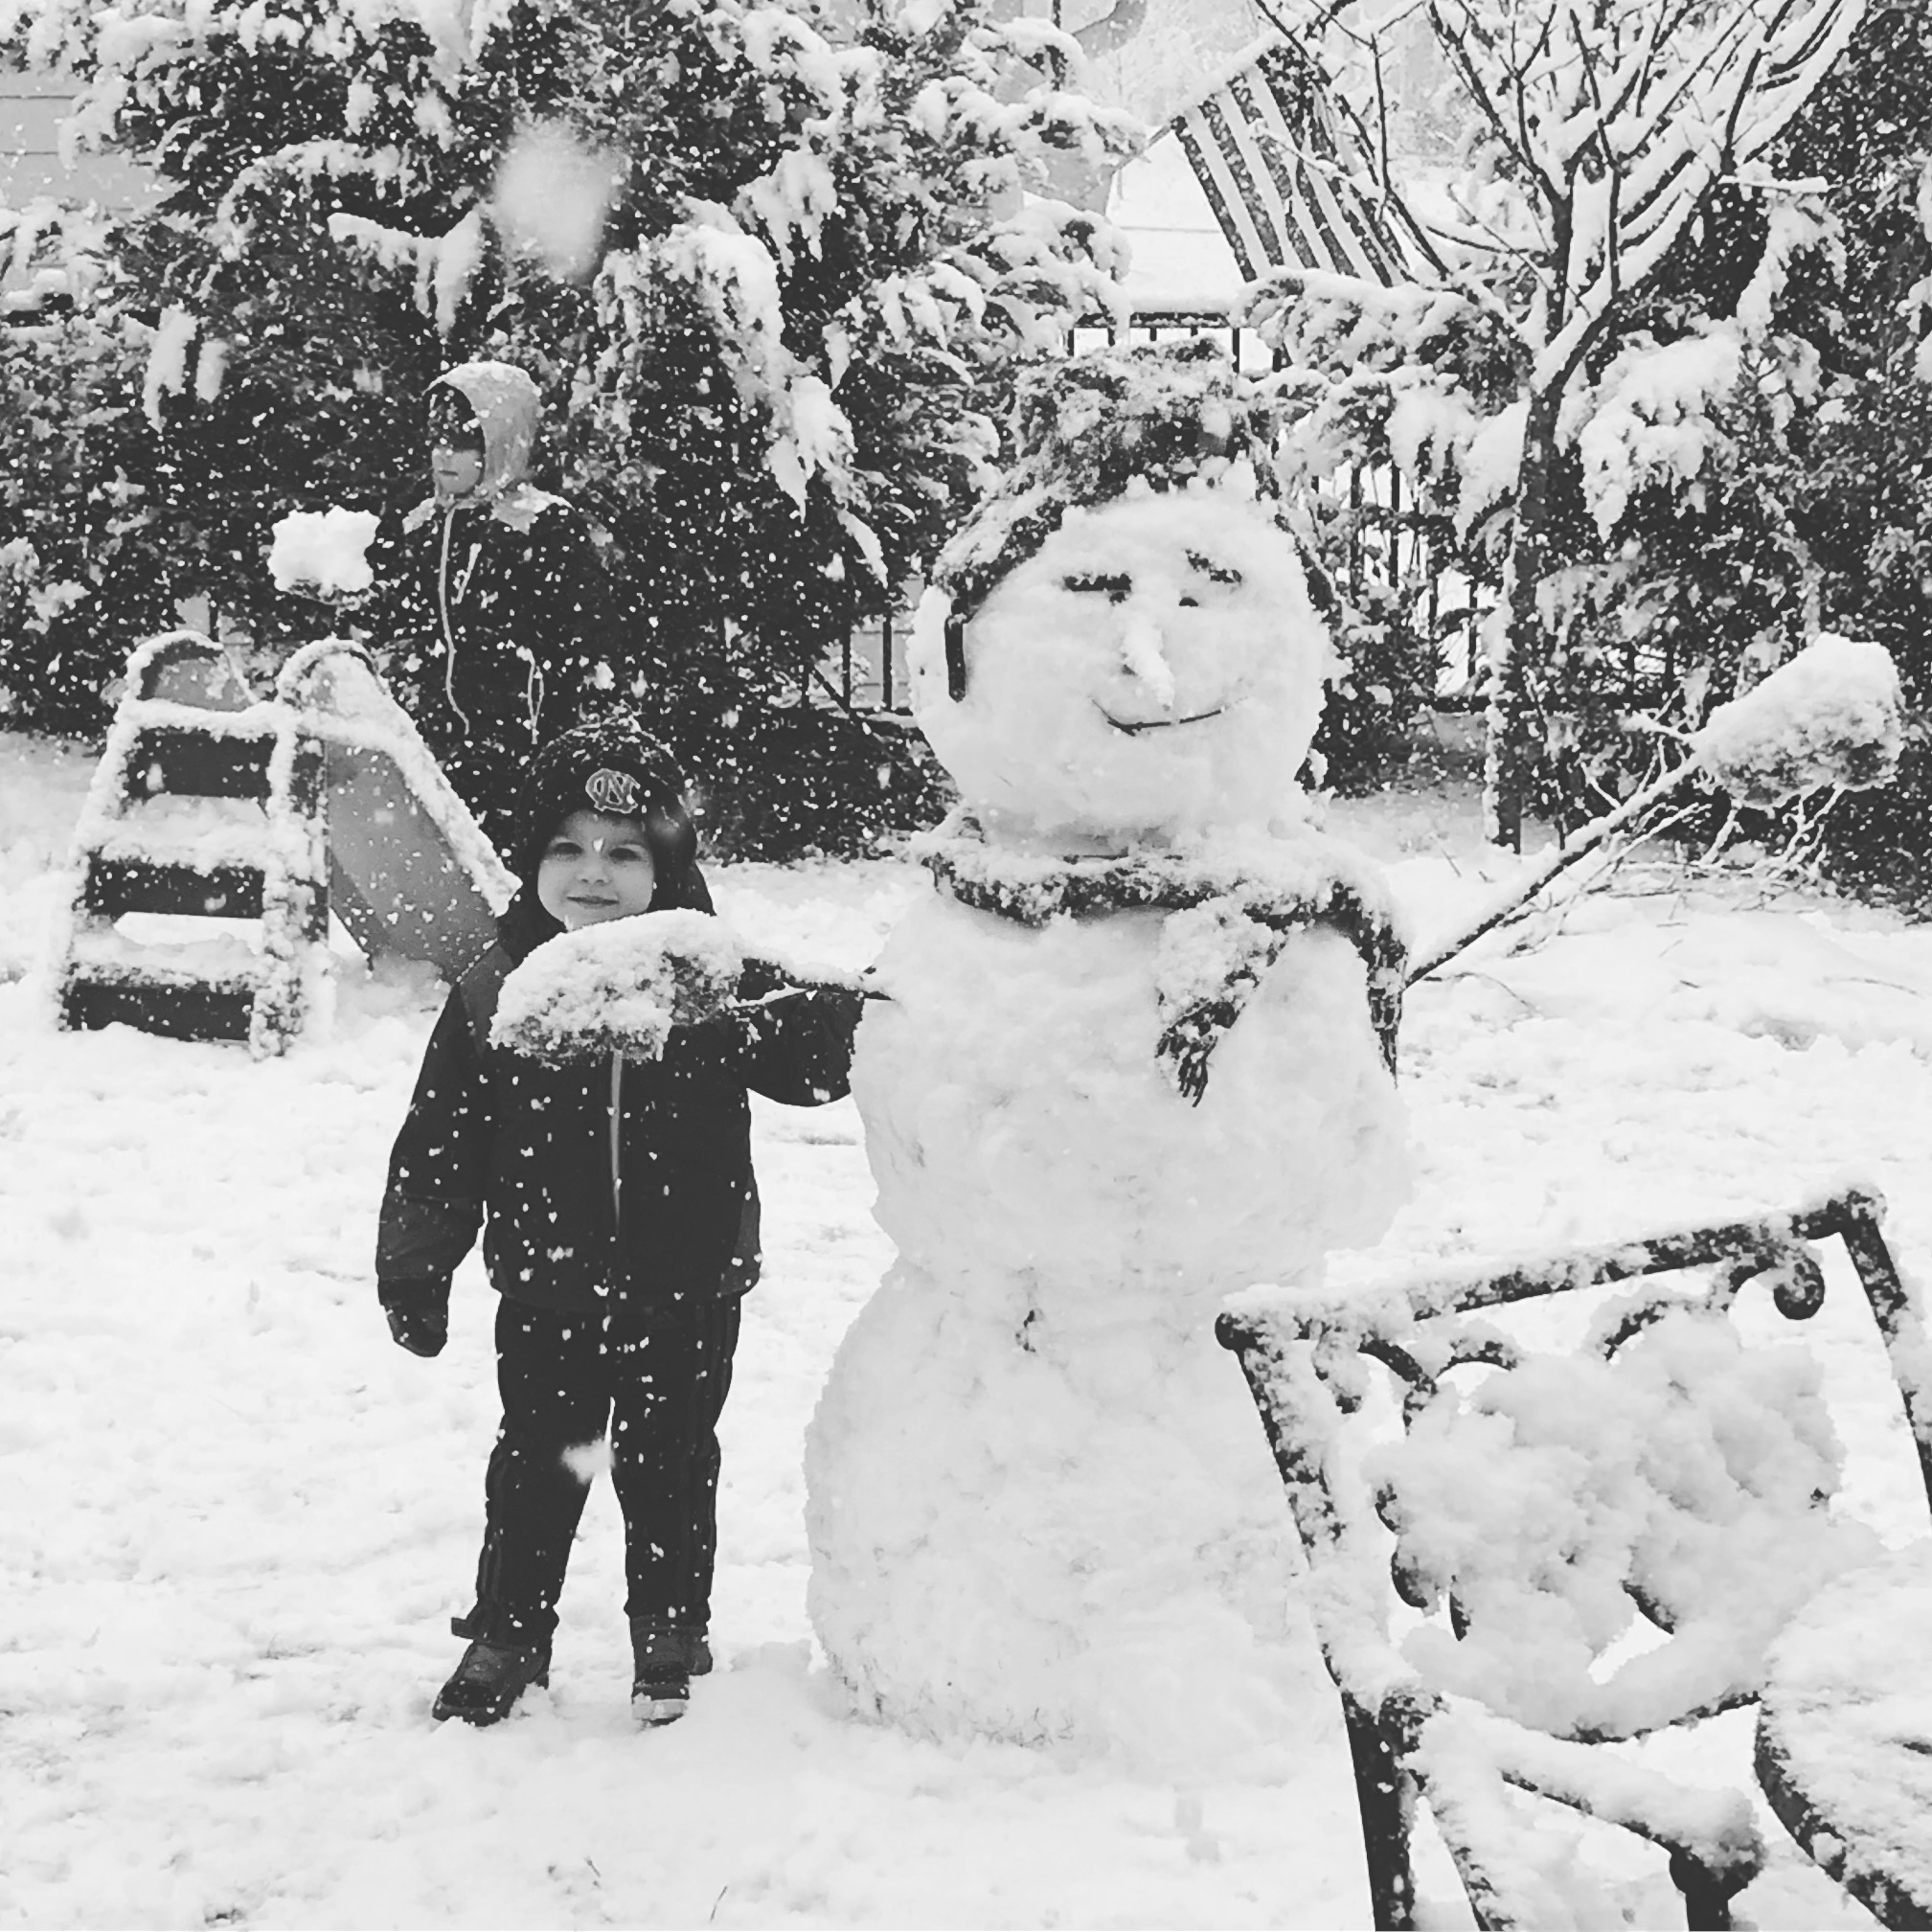 "<div class=""meta image-caption""><div class=""origin-logo origin-image none""><span>none</span></div><span class=""caption-text"">A snowman in Pittsboro (Credit: Patricia Gsellers)</span></div>"